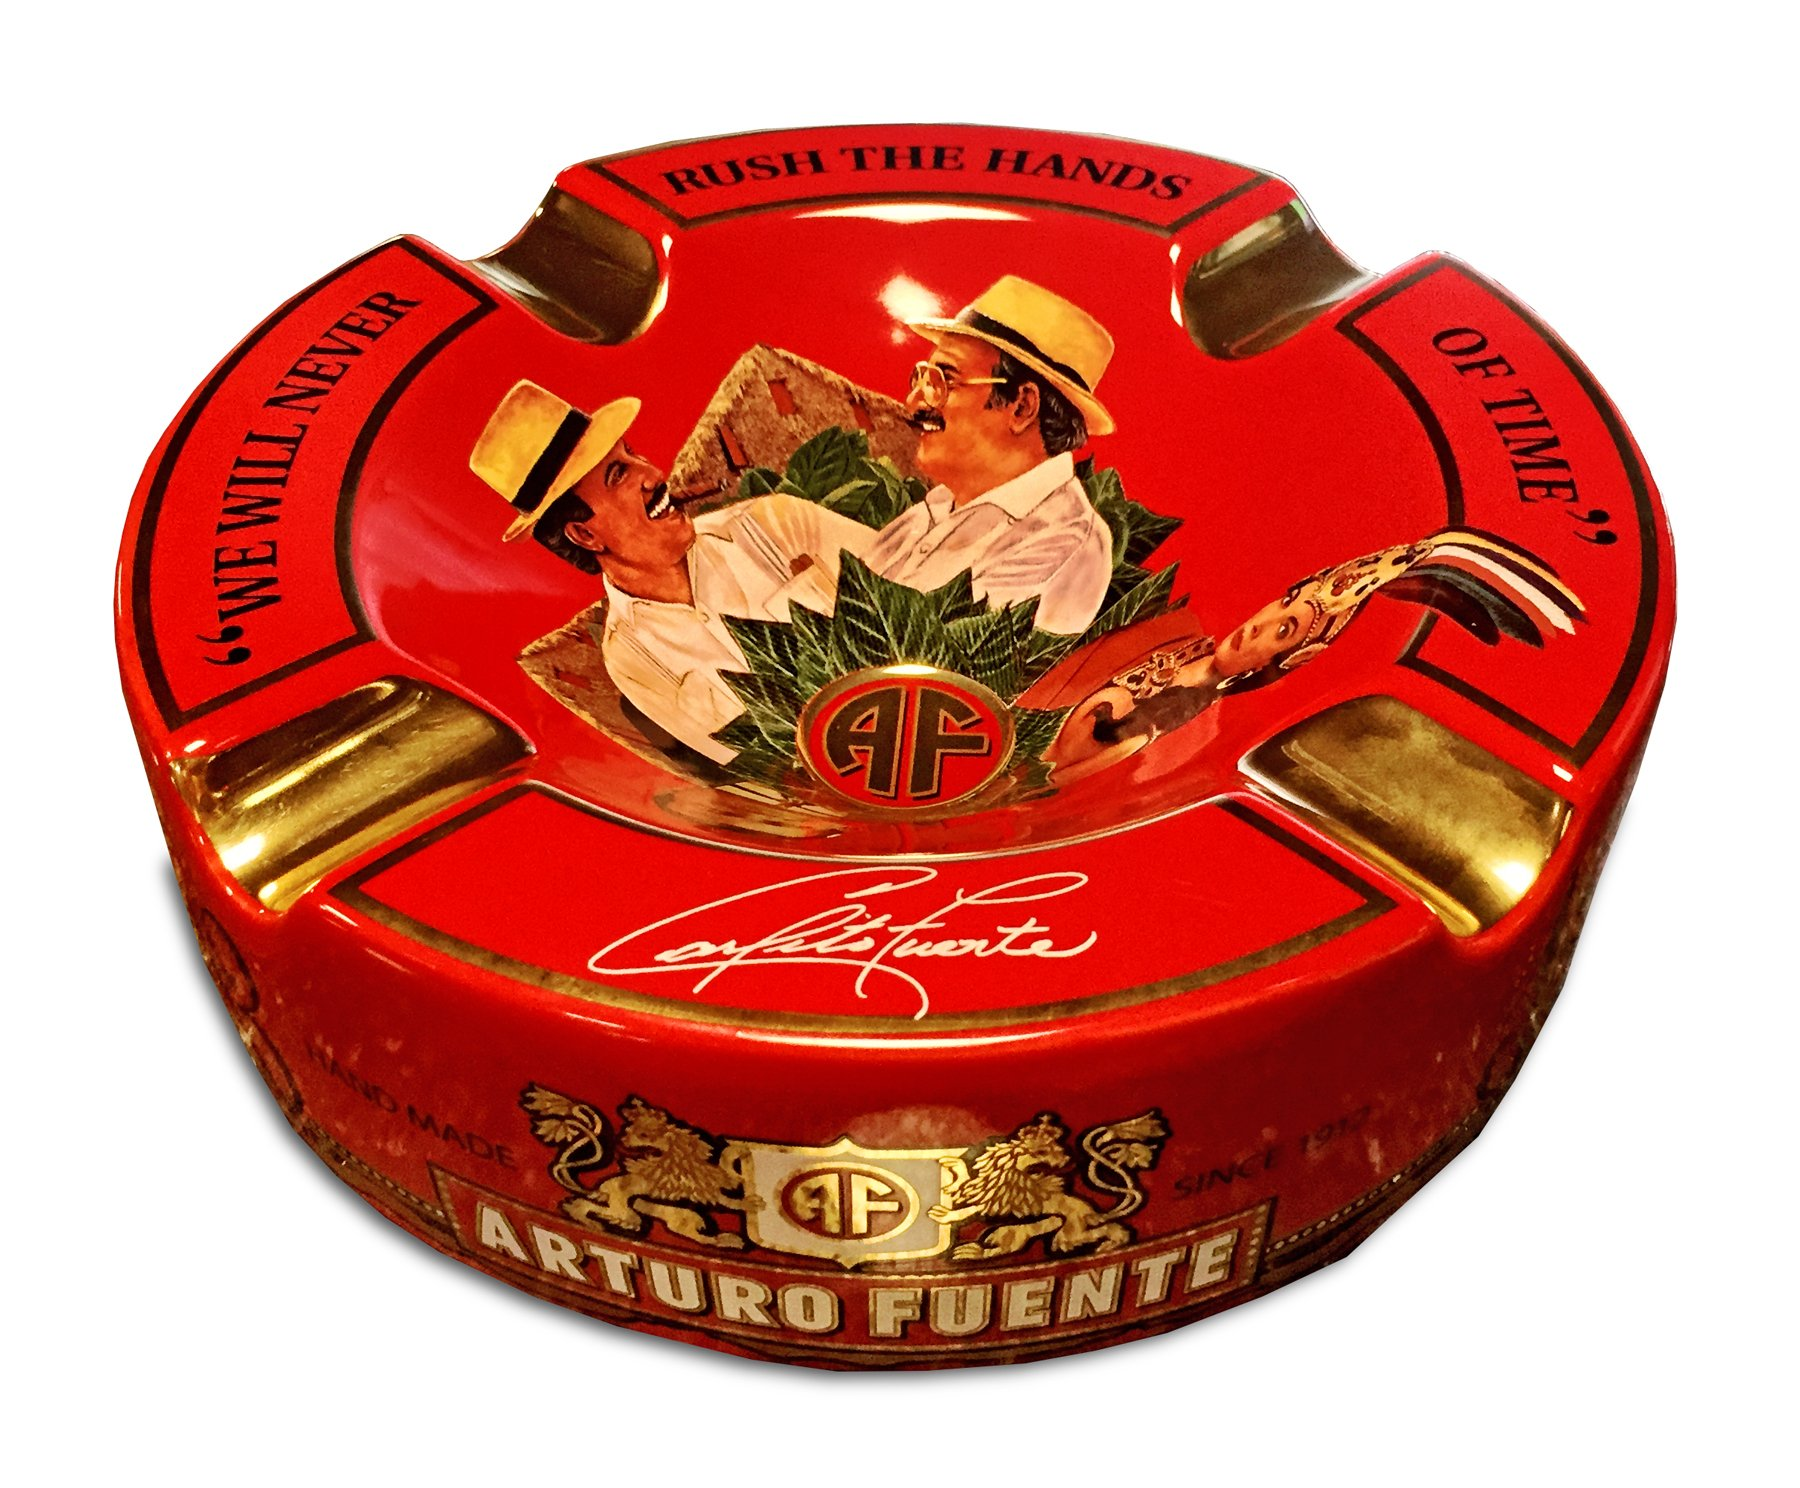 Limited Edition Large 8.75'' Arturo Fuente Porcelain Cigar Ashtray Red